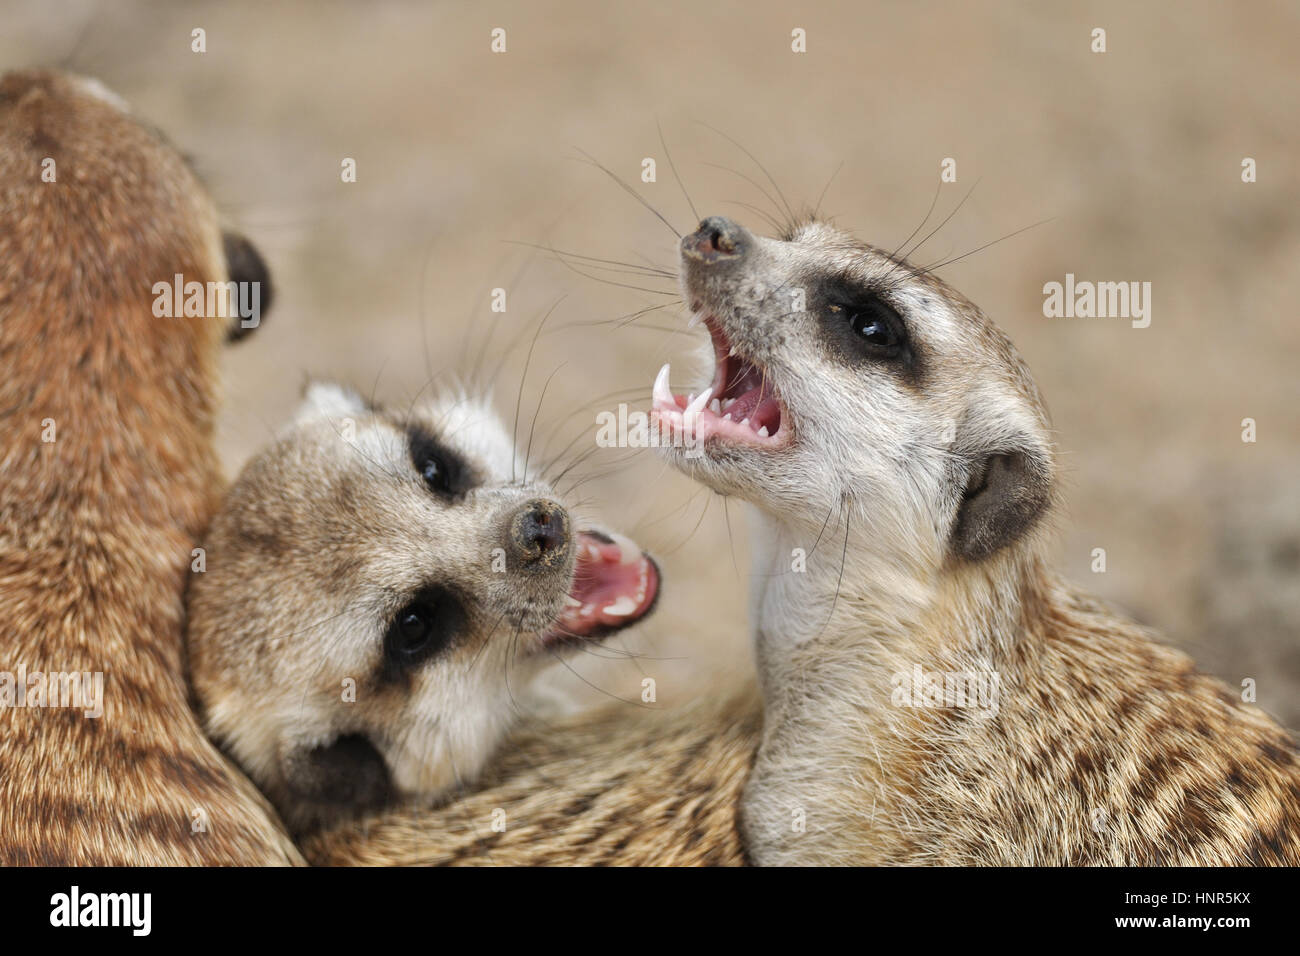 Meerkat in group with open mouth and visible teeth - Stock Image